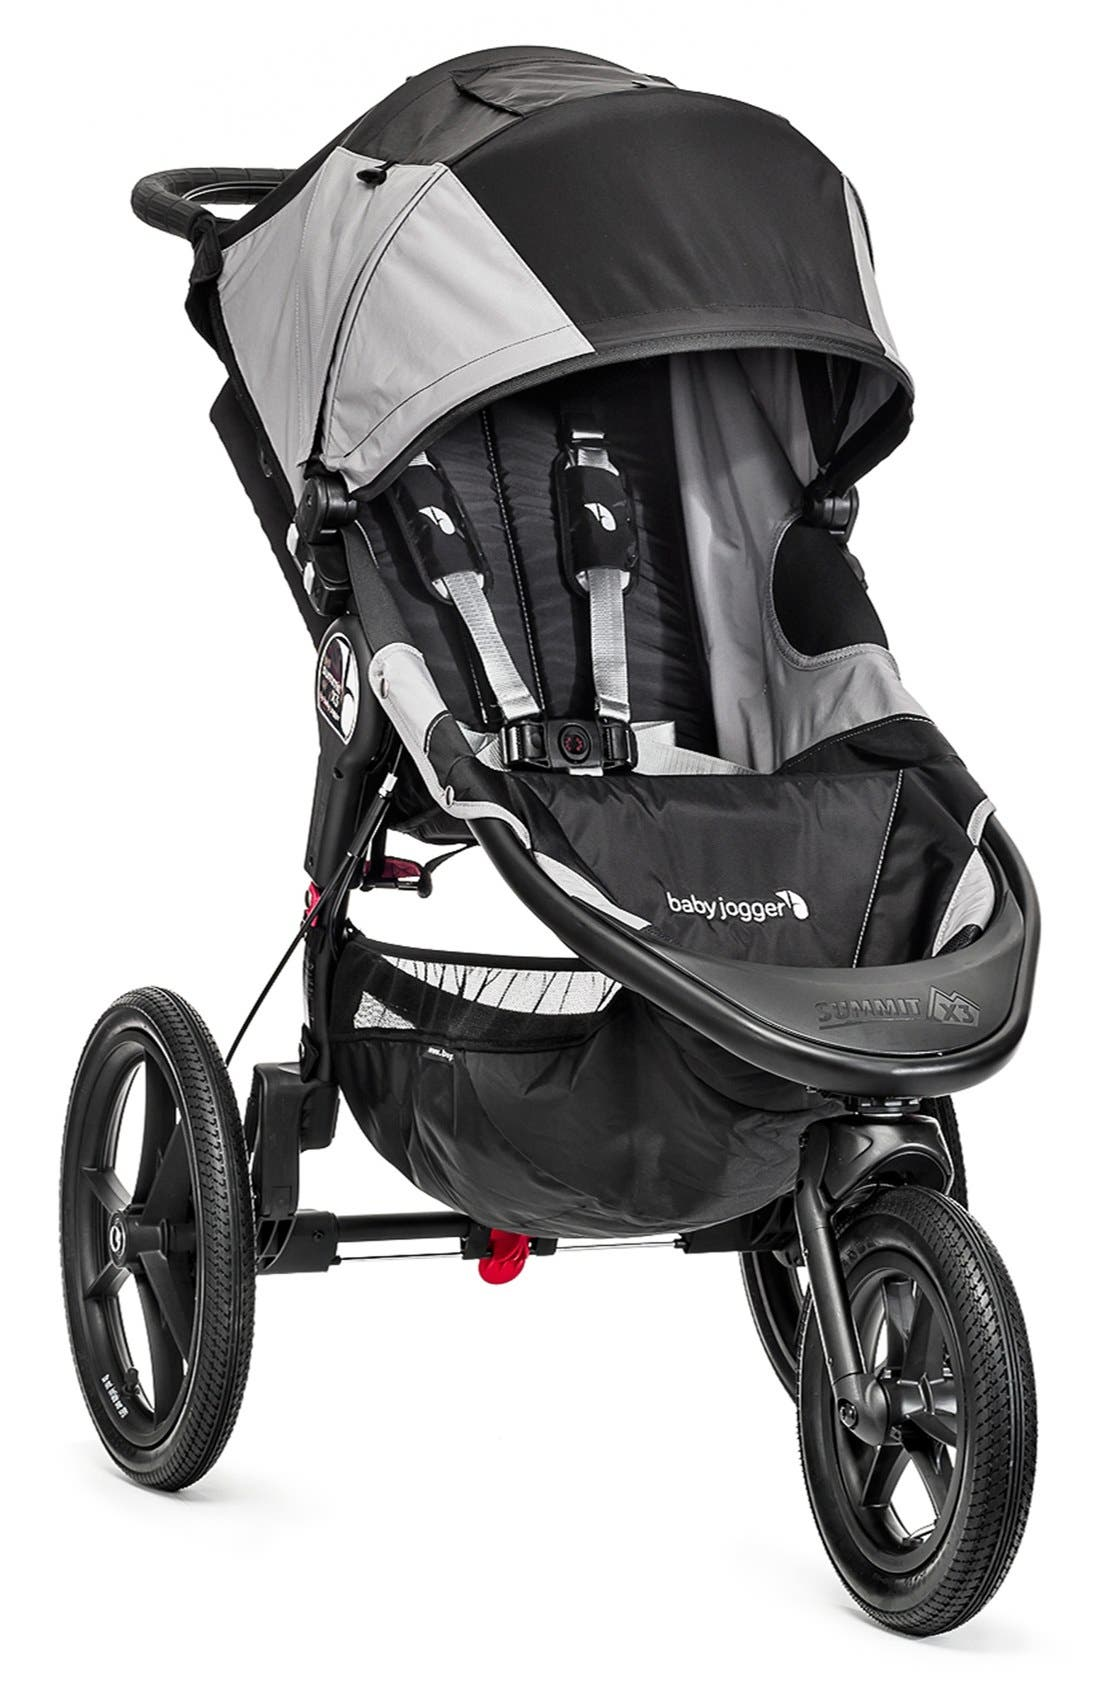 Main Image - Baby Jogger 'Summit X3' Single Jogging Stroller